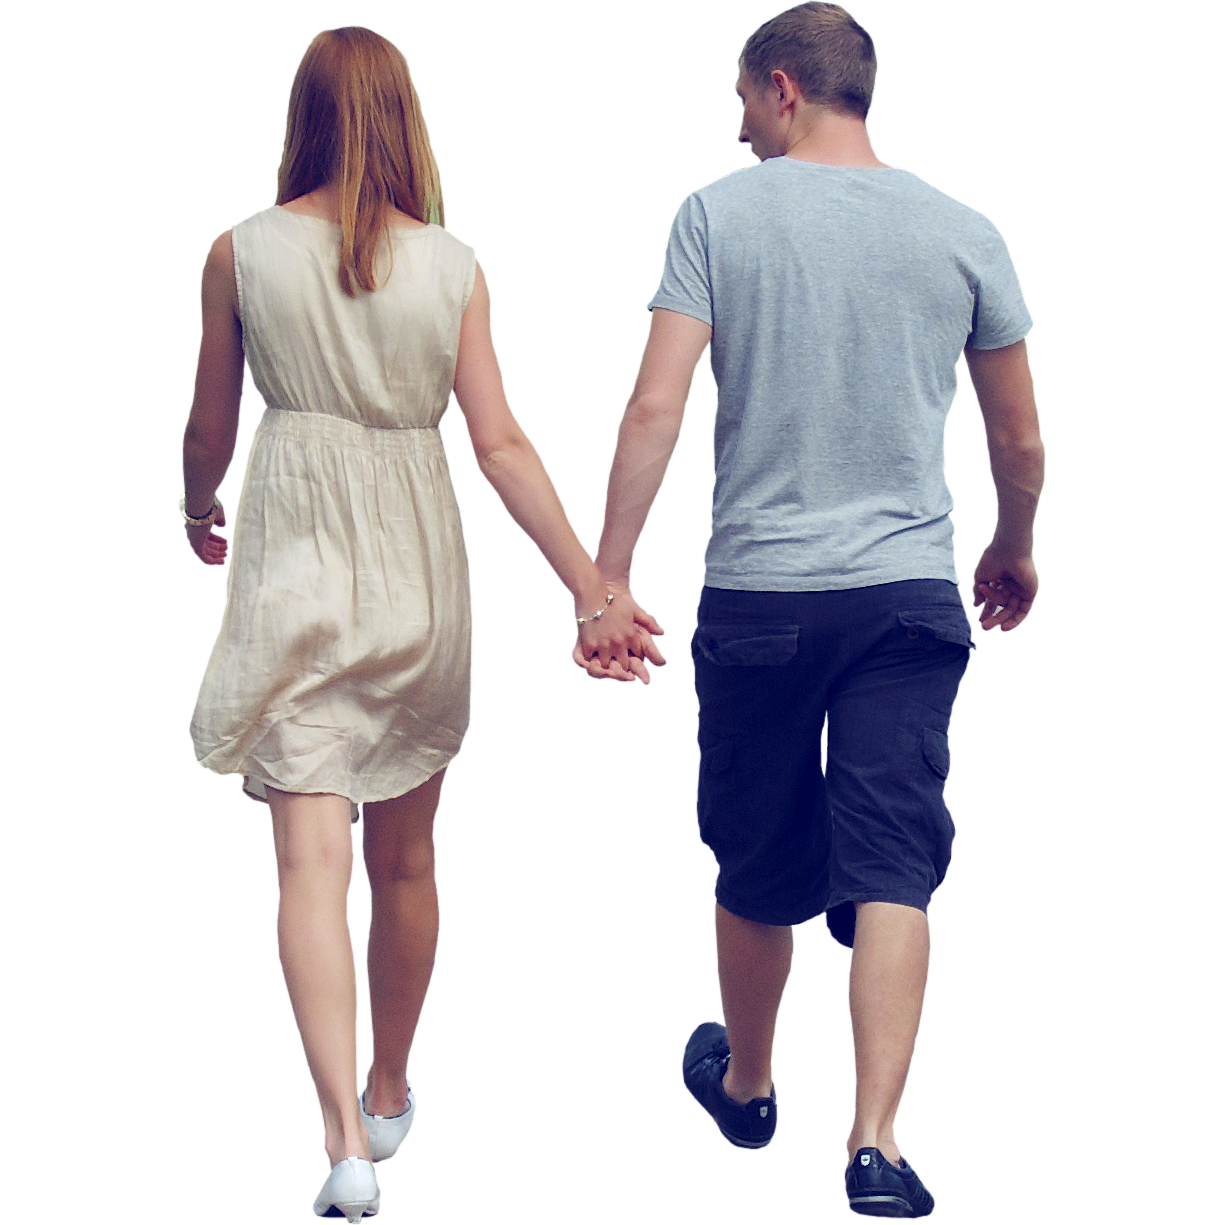 Hd couple clipart download